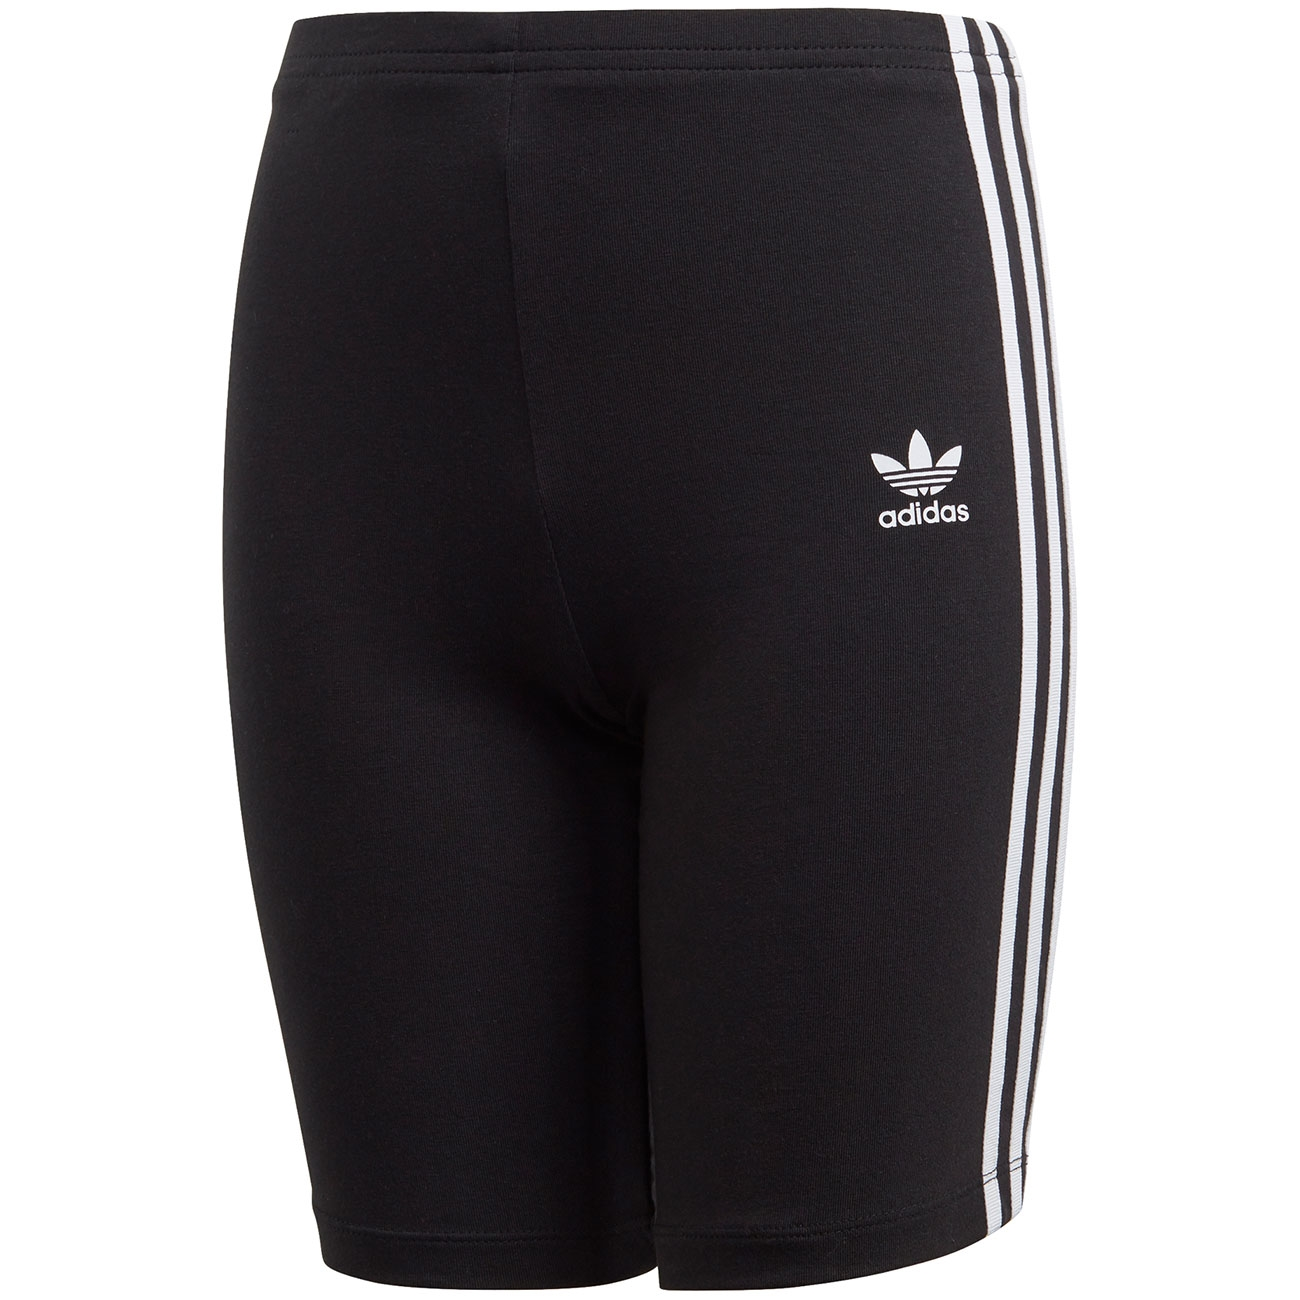 adidas-cyckling-shorts-black-white-stripe